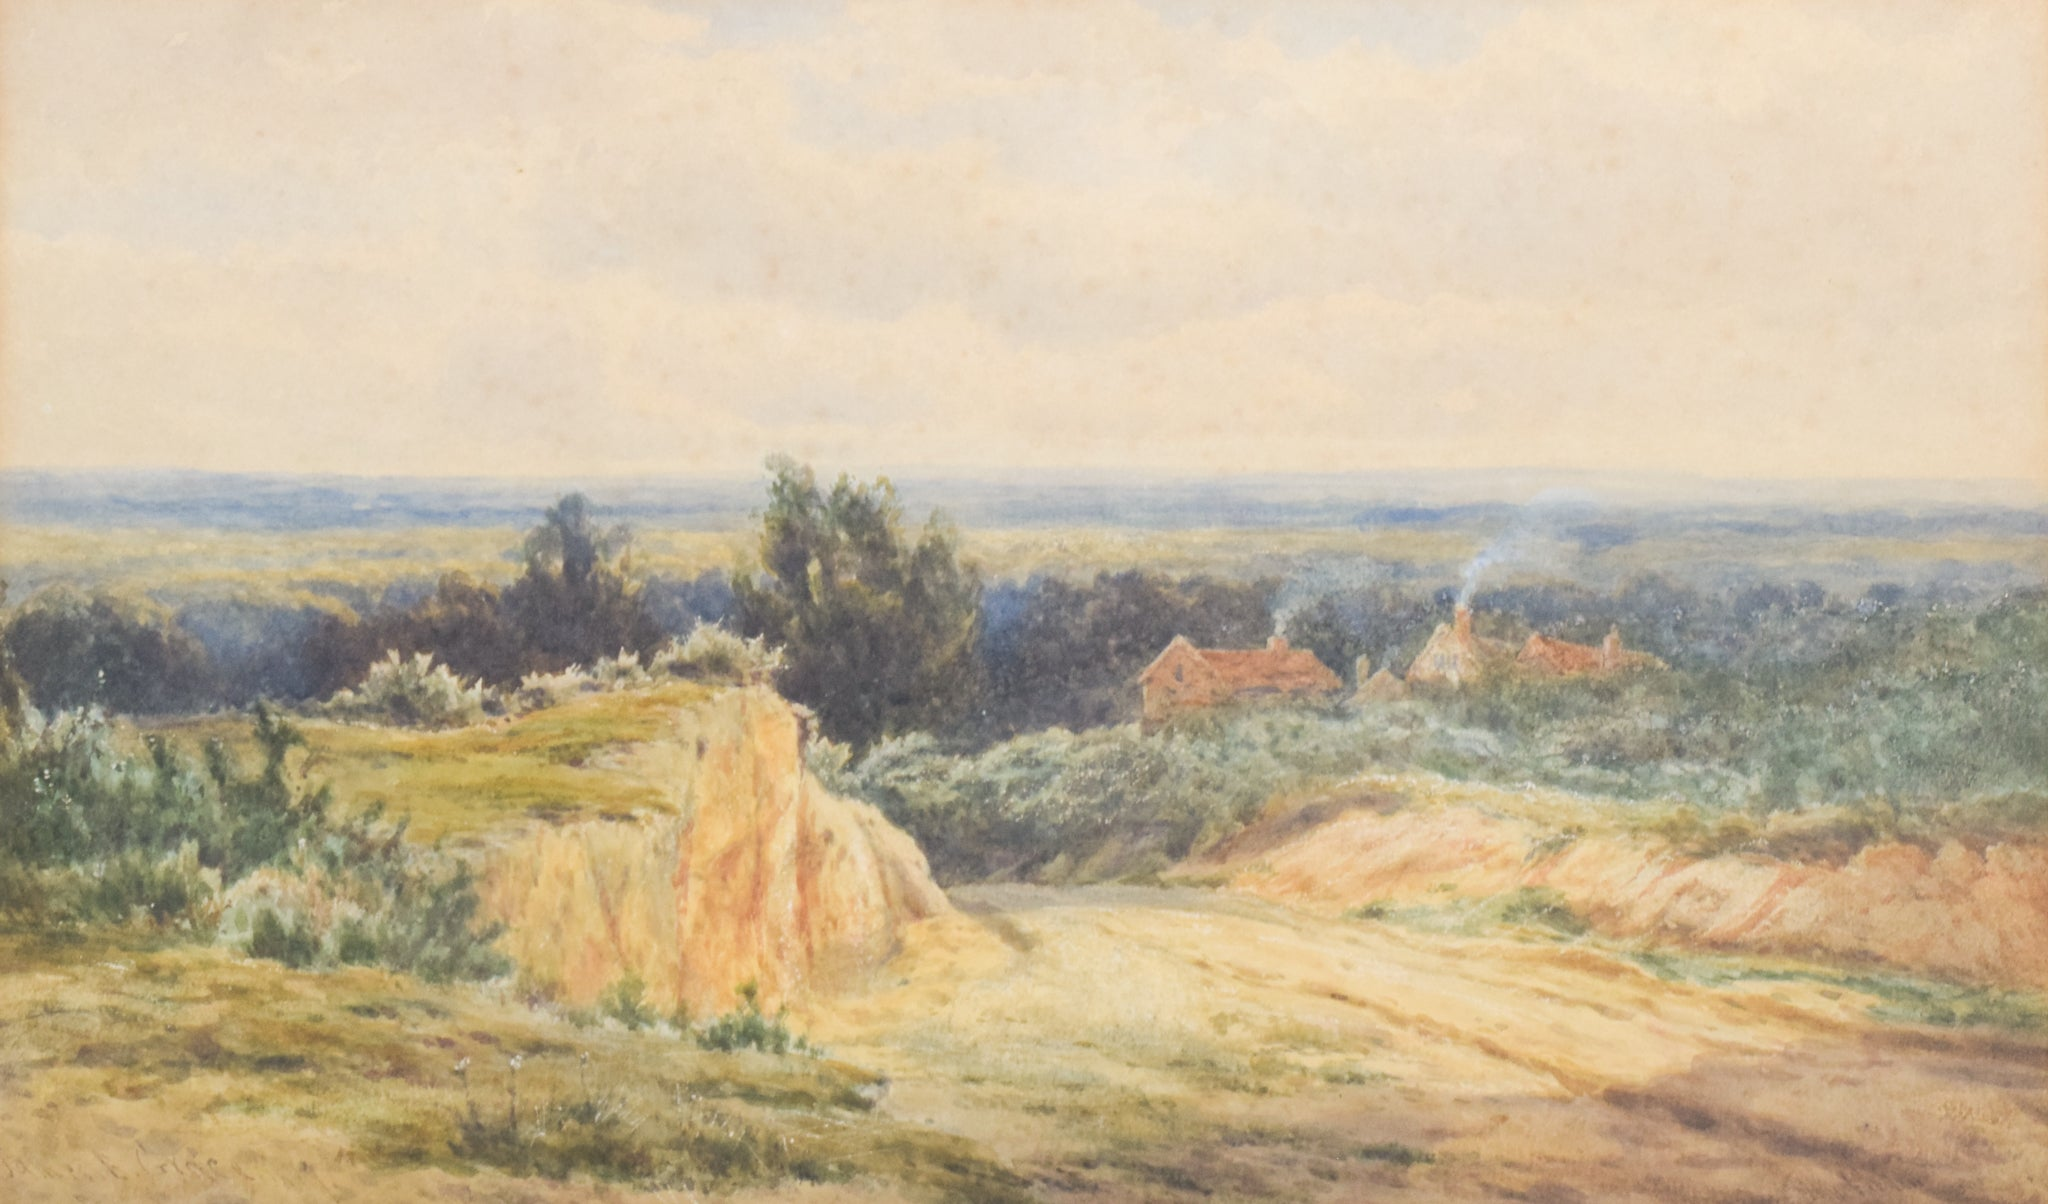 'Rural Landscape' watercolour by James Edward Grace